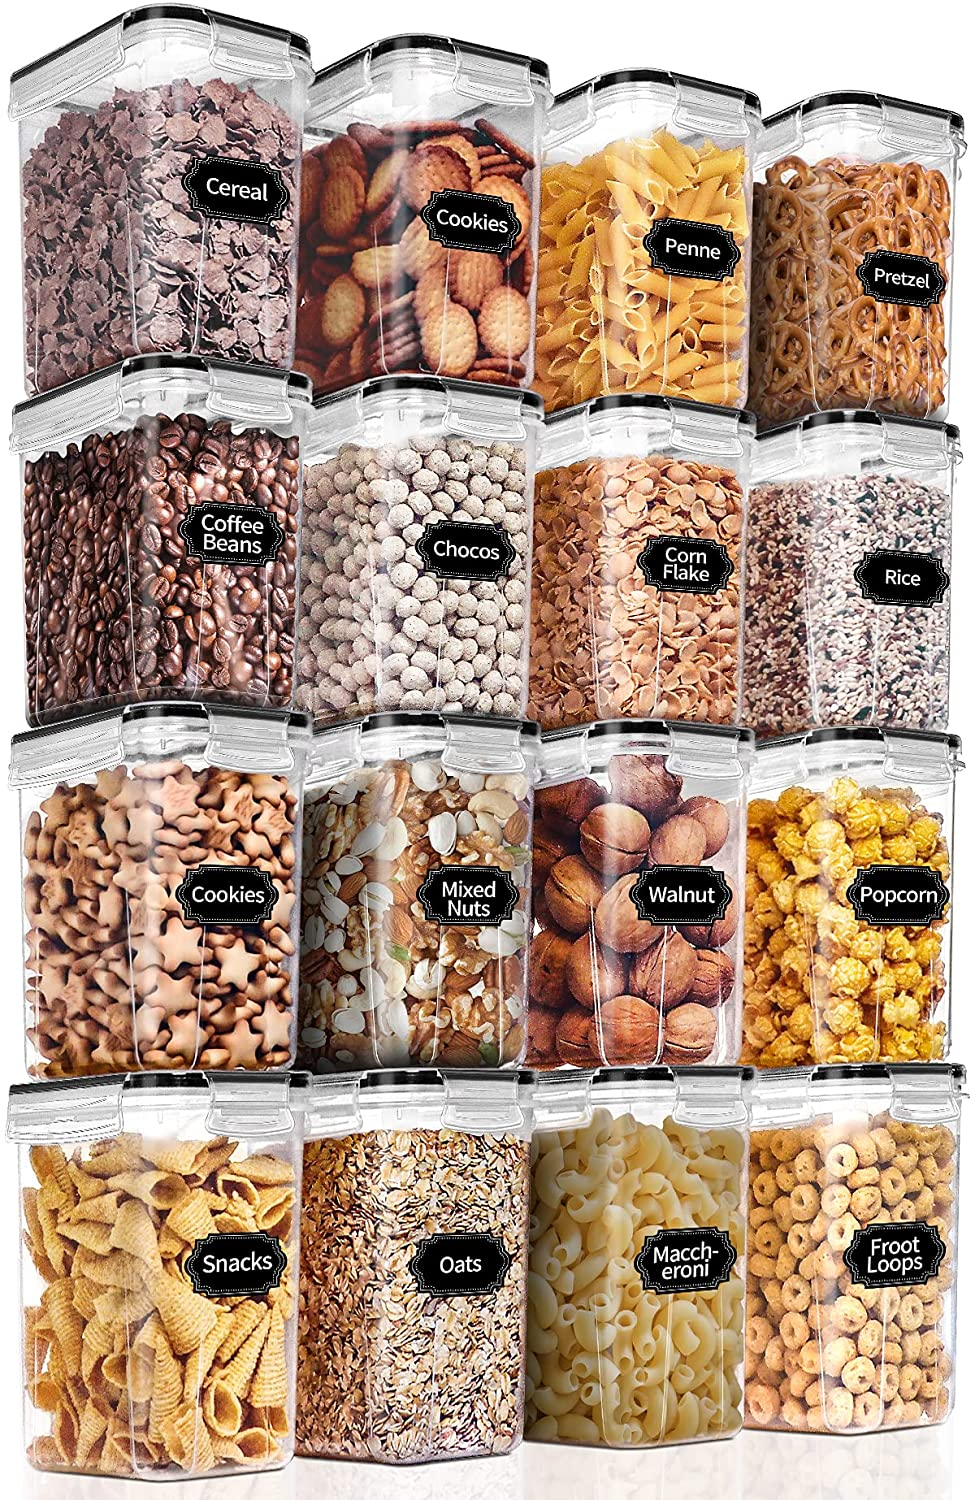 PRAKI Airtight Food Storage Containers 16 Pieces 1.6L, Kitchen Pantry Organization and Storage - BPA Free Plastic Cereal Storage Containers for Cereal, Flour and Sugar - Lables & Marker, Black